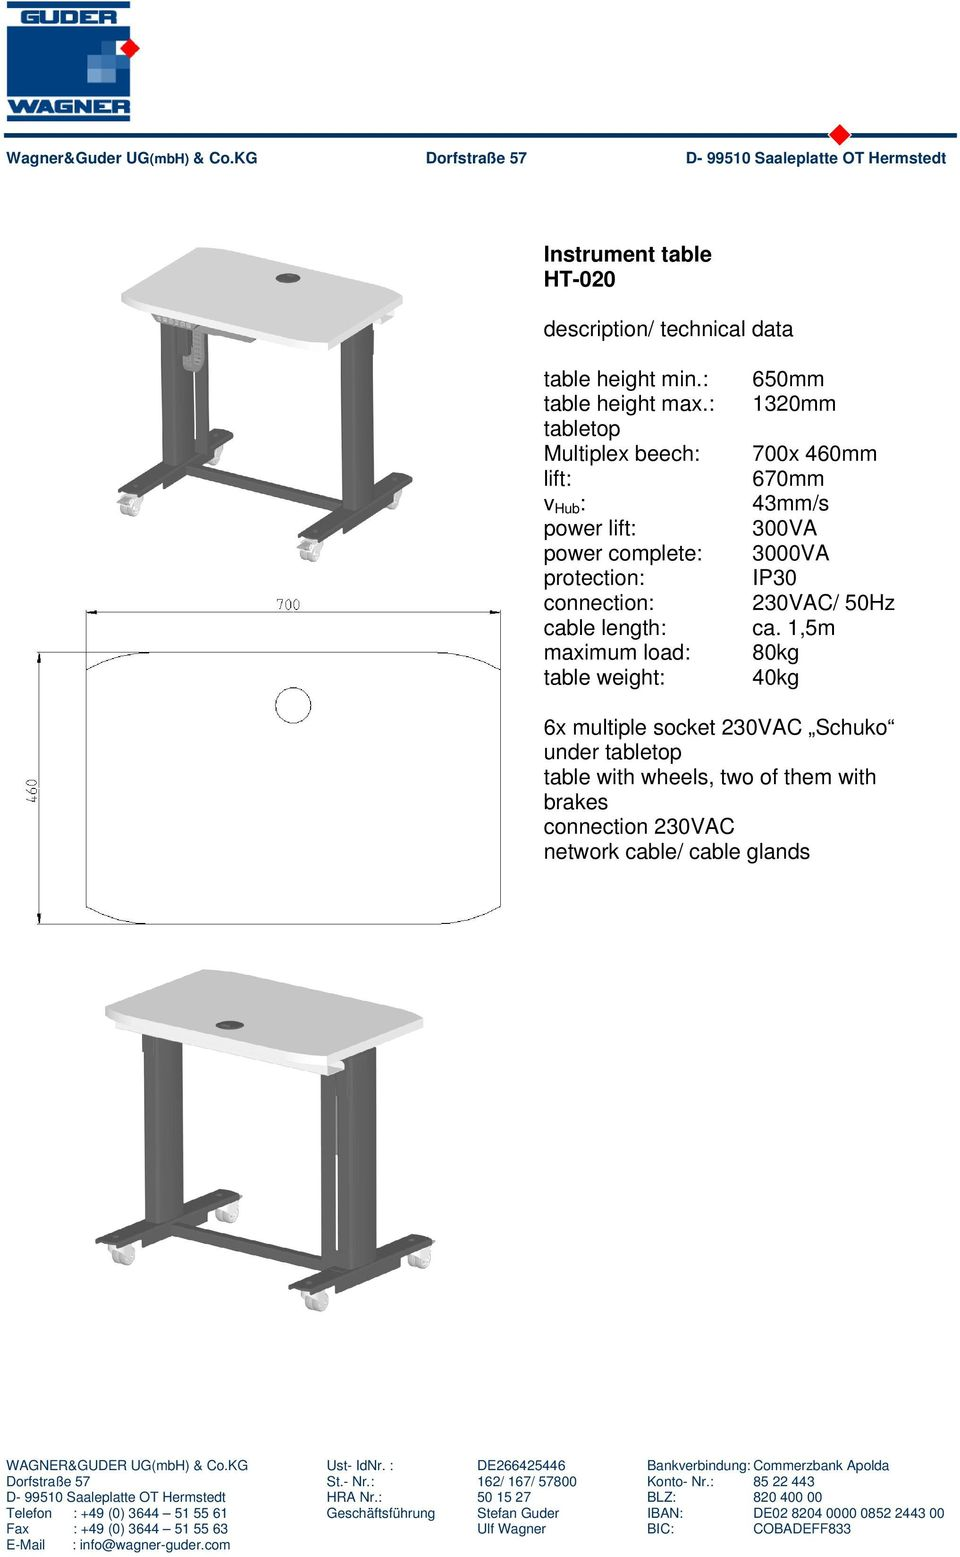 table weight: 40kg 6x multiple socket